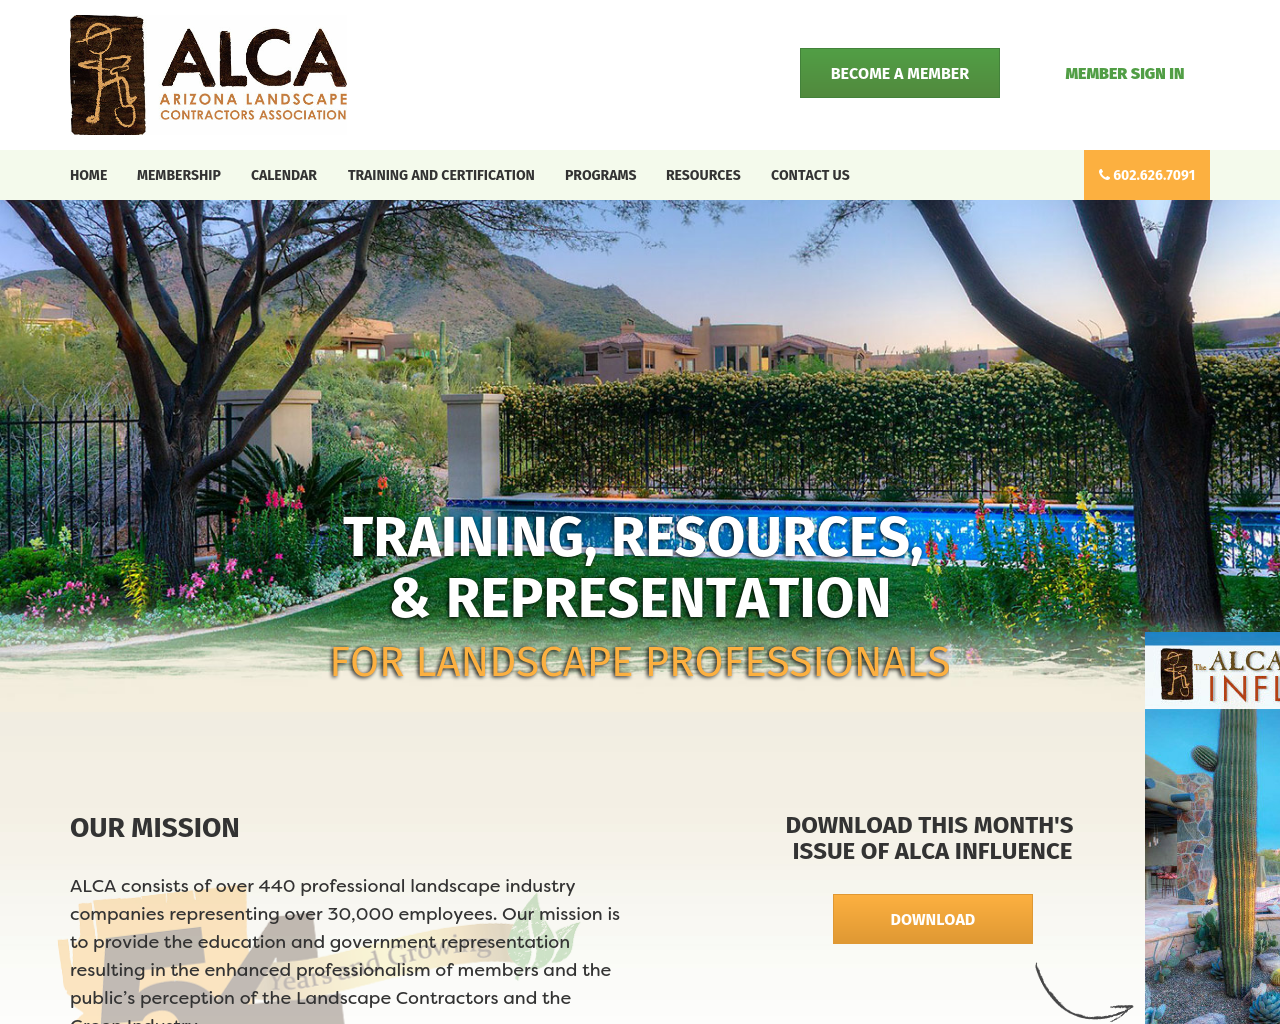 Arizona-Landscape-Contractors-Association-Advertising-Reviews-Pricing